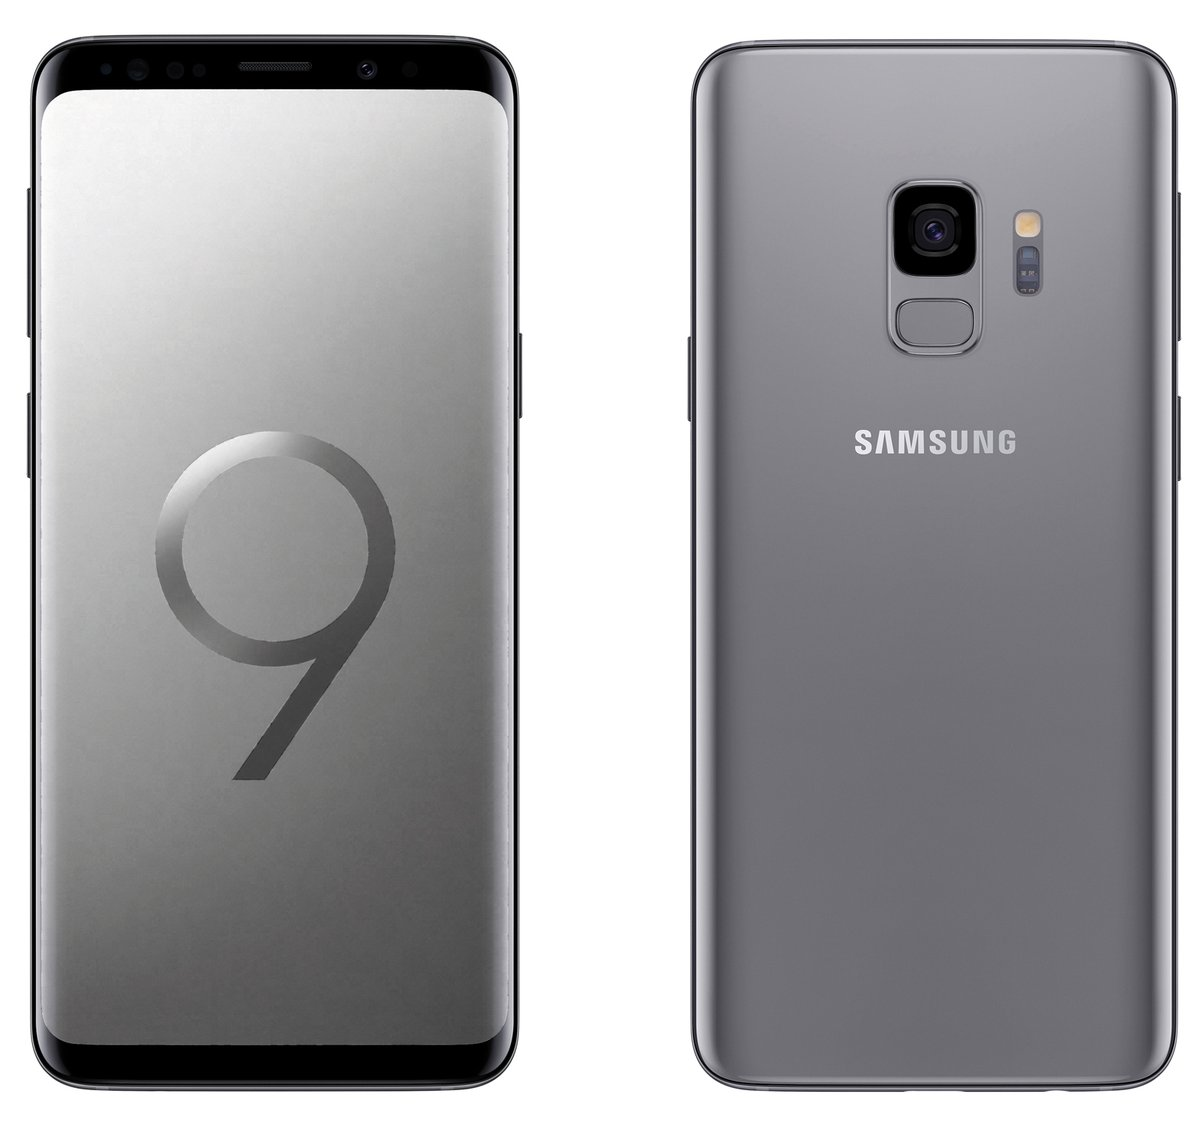 Samsung Galaxy S9 and S9+: What they're all about